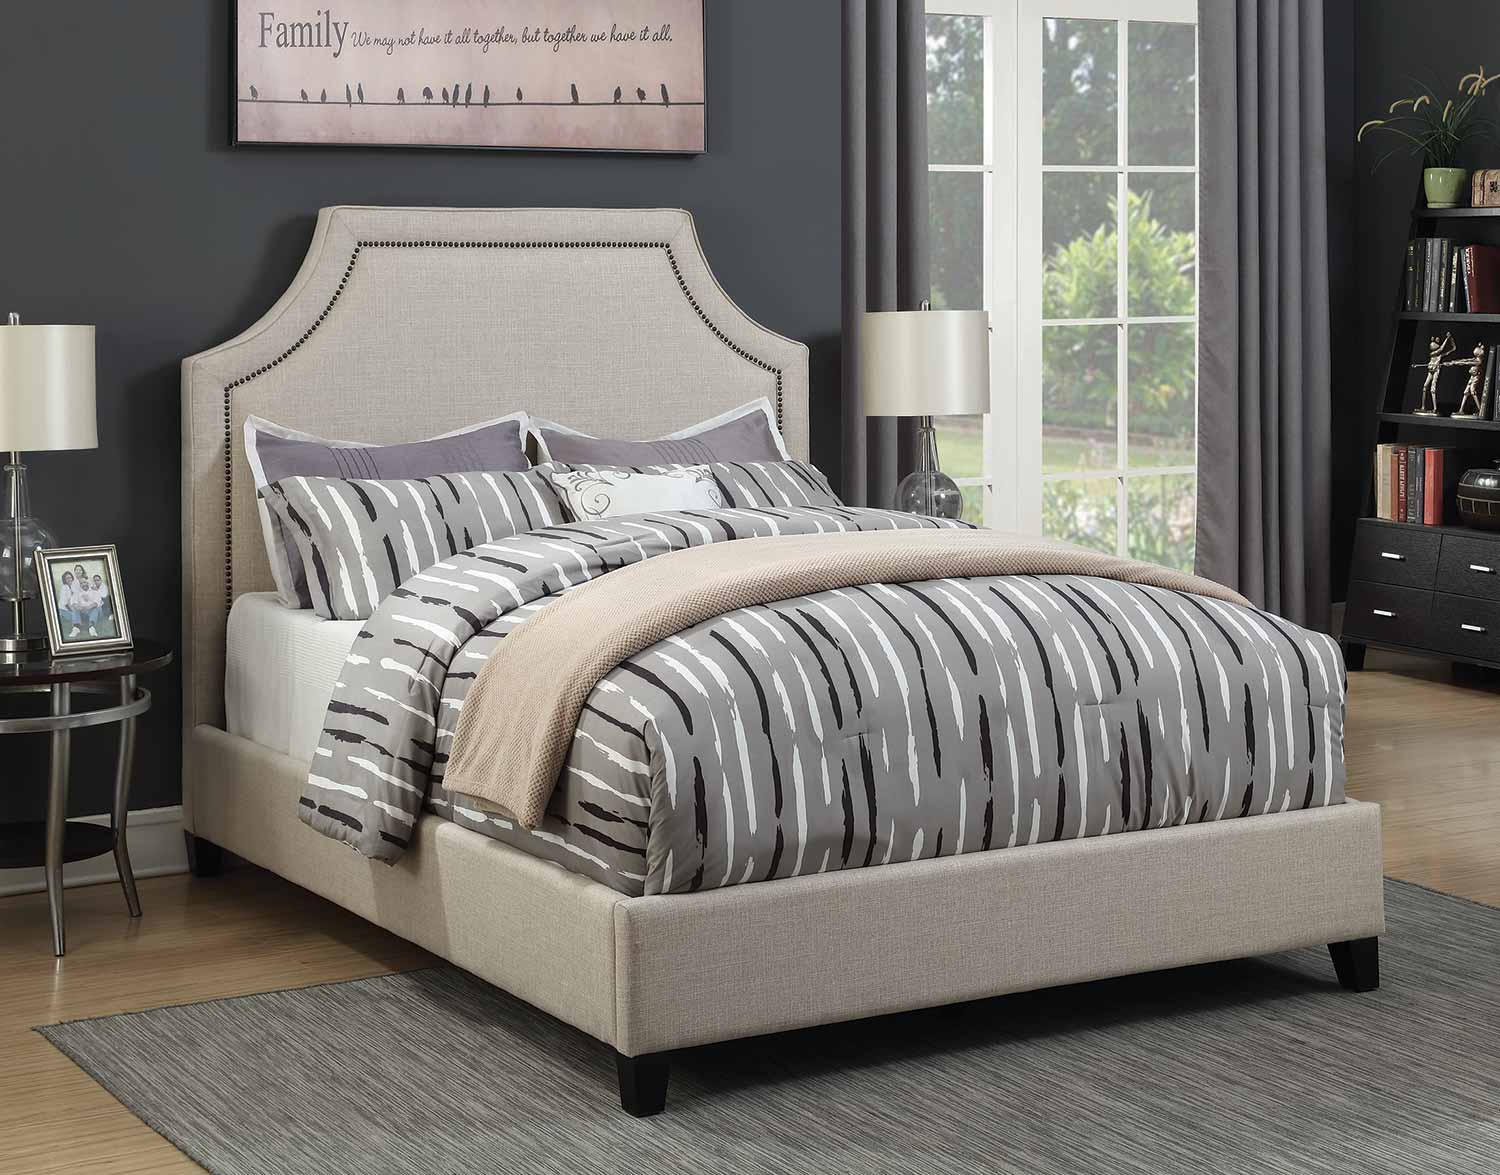 Coaster Cantillo Rivera Low Profile Upholstered Bed - Oatmeal Fabric